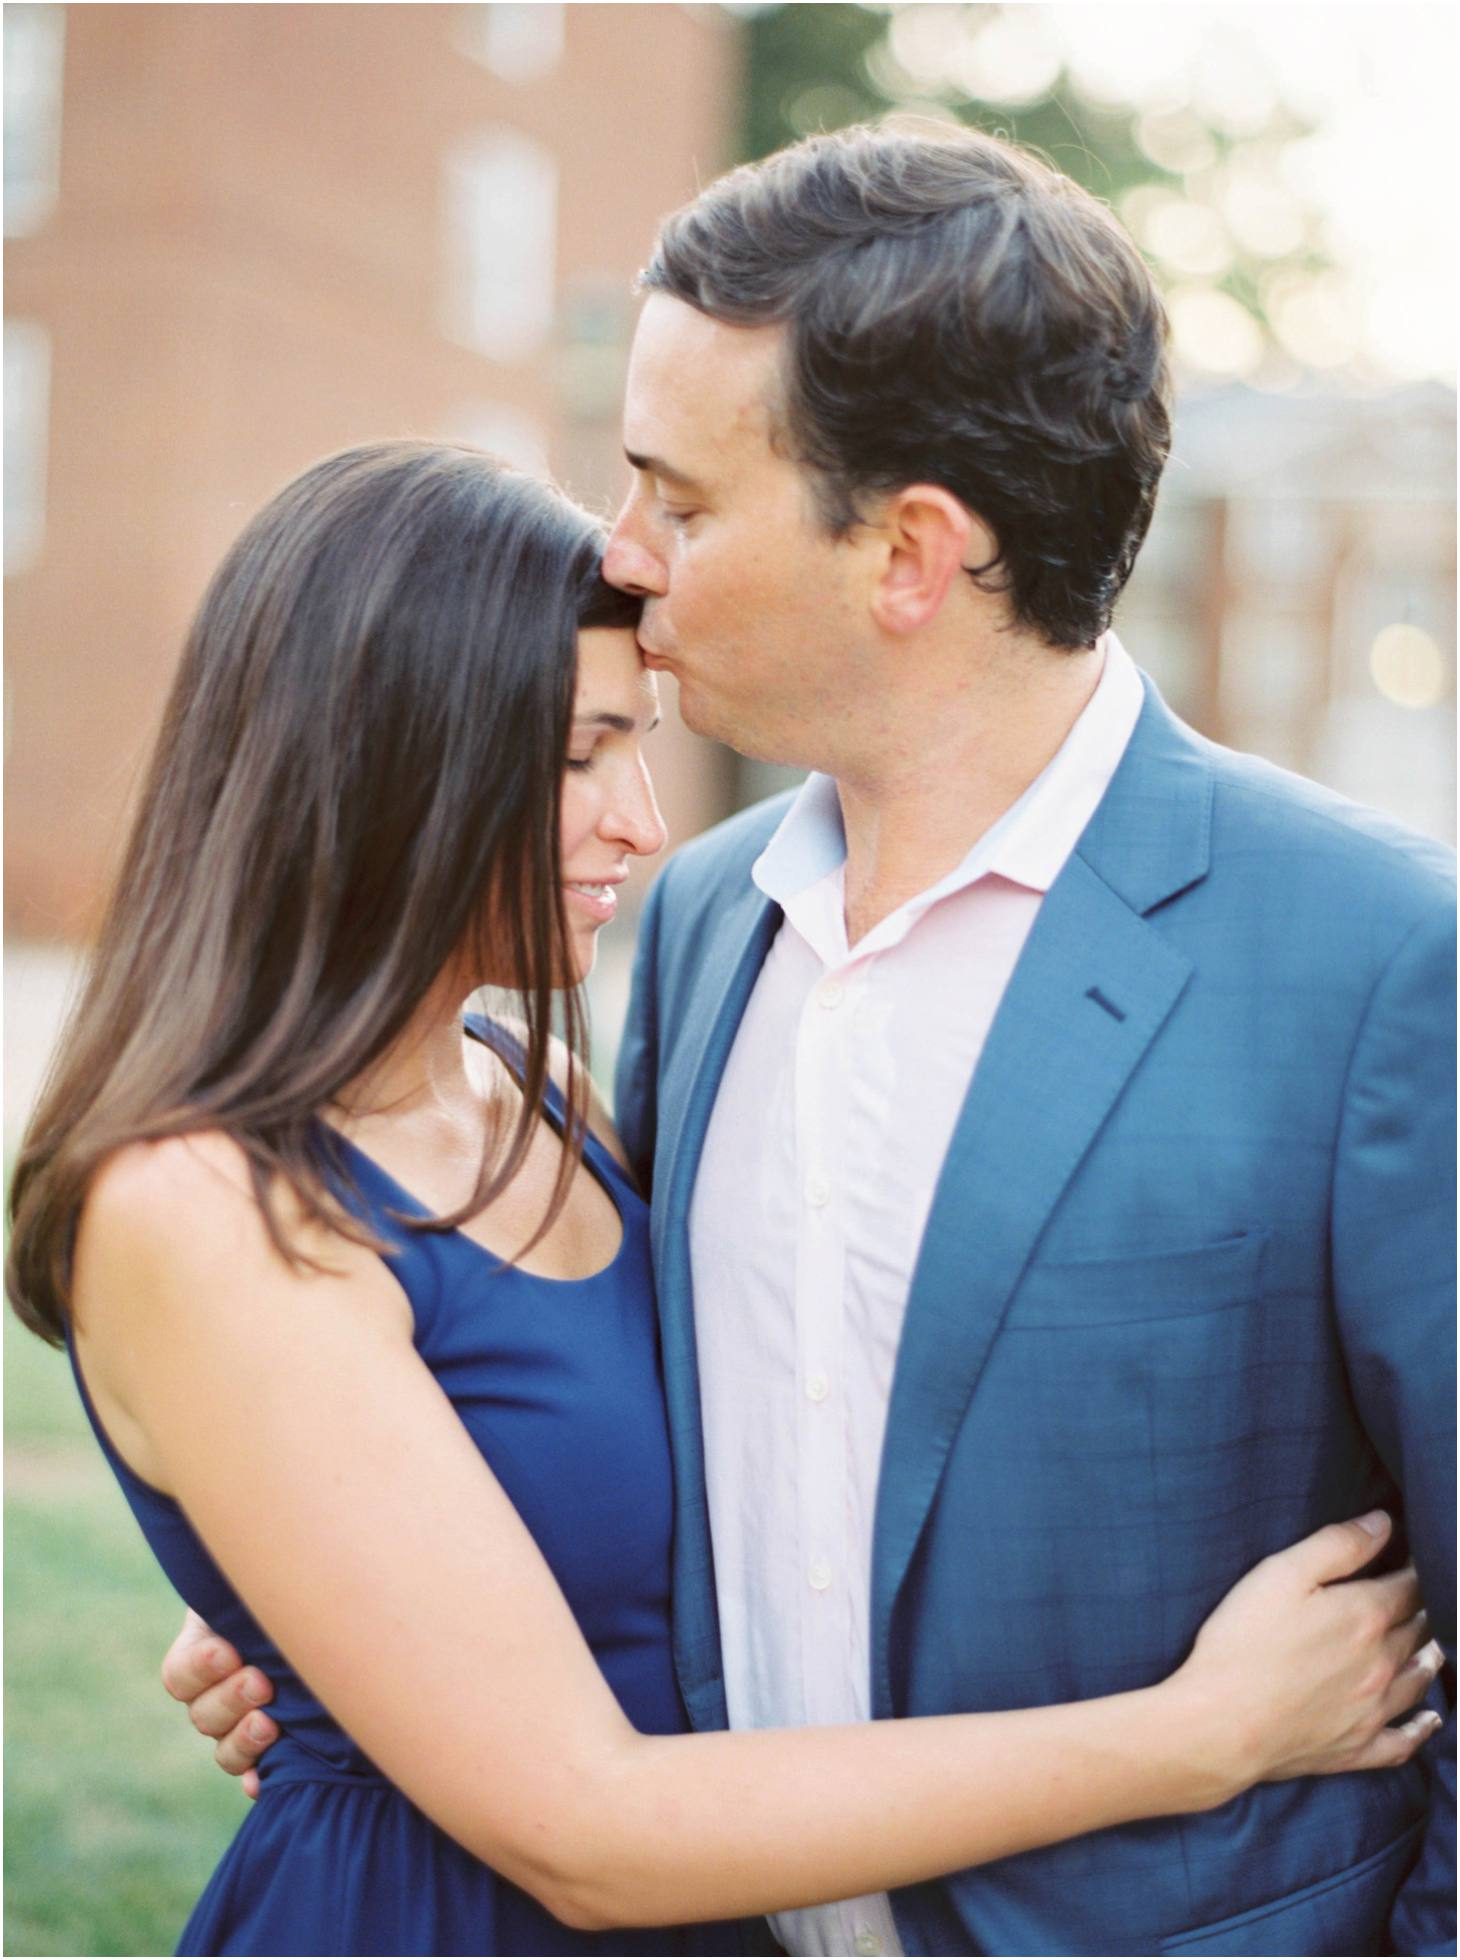 kim-stockwell-photography-fine-art-film-engagements-charlottesville-virginia-meghan-and-taylor_0852